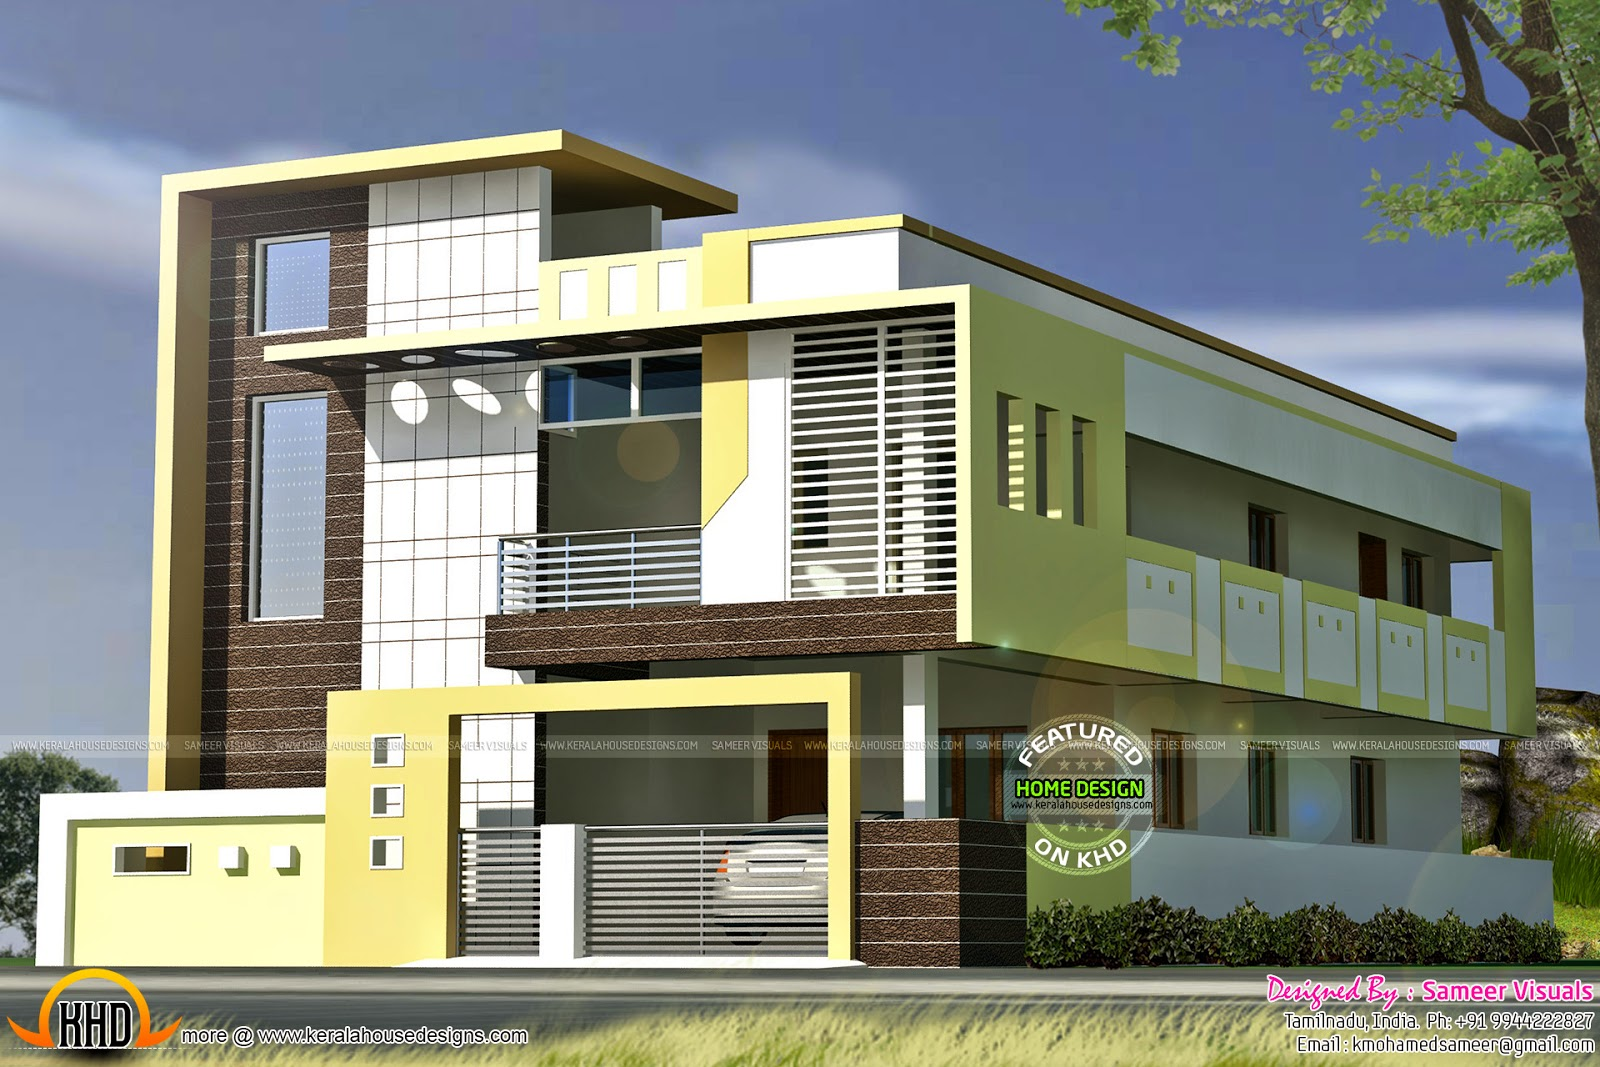 Rented purpose house plan kerala home design and floor plans for Rental property floor plans